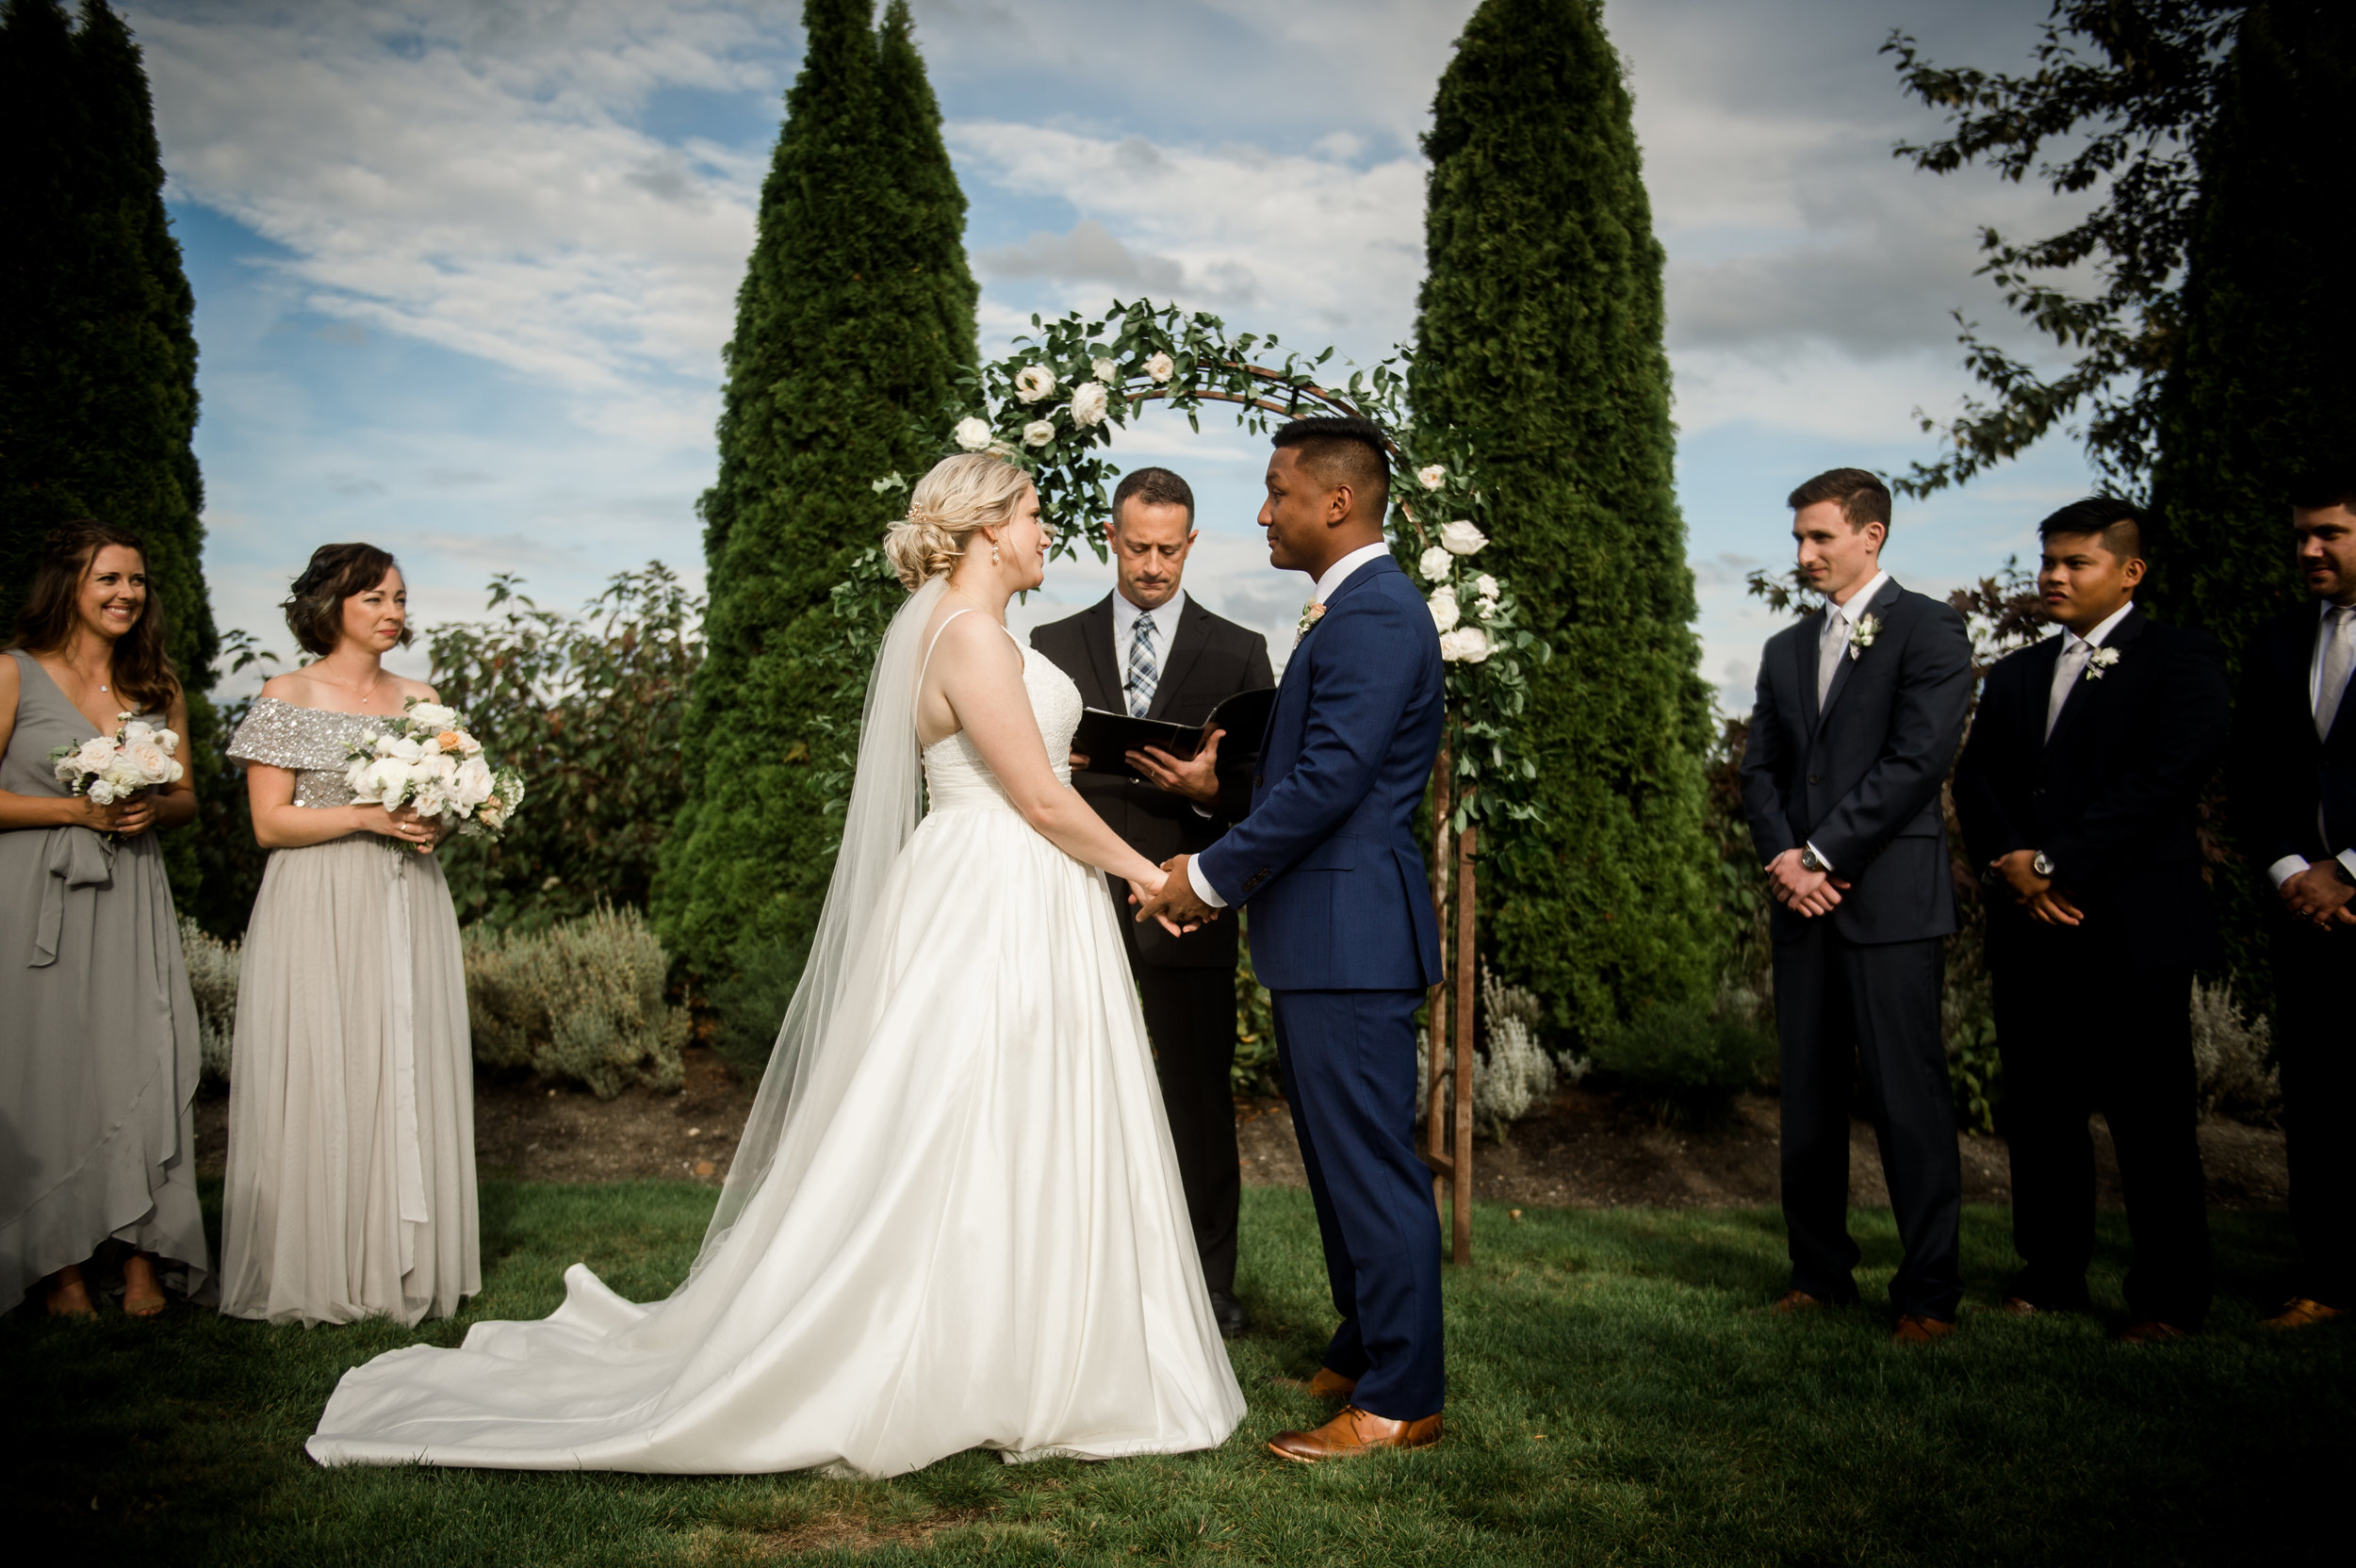 Photos: Jenn Repp Photography